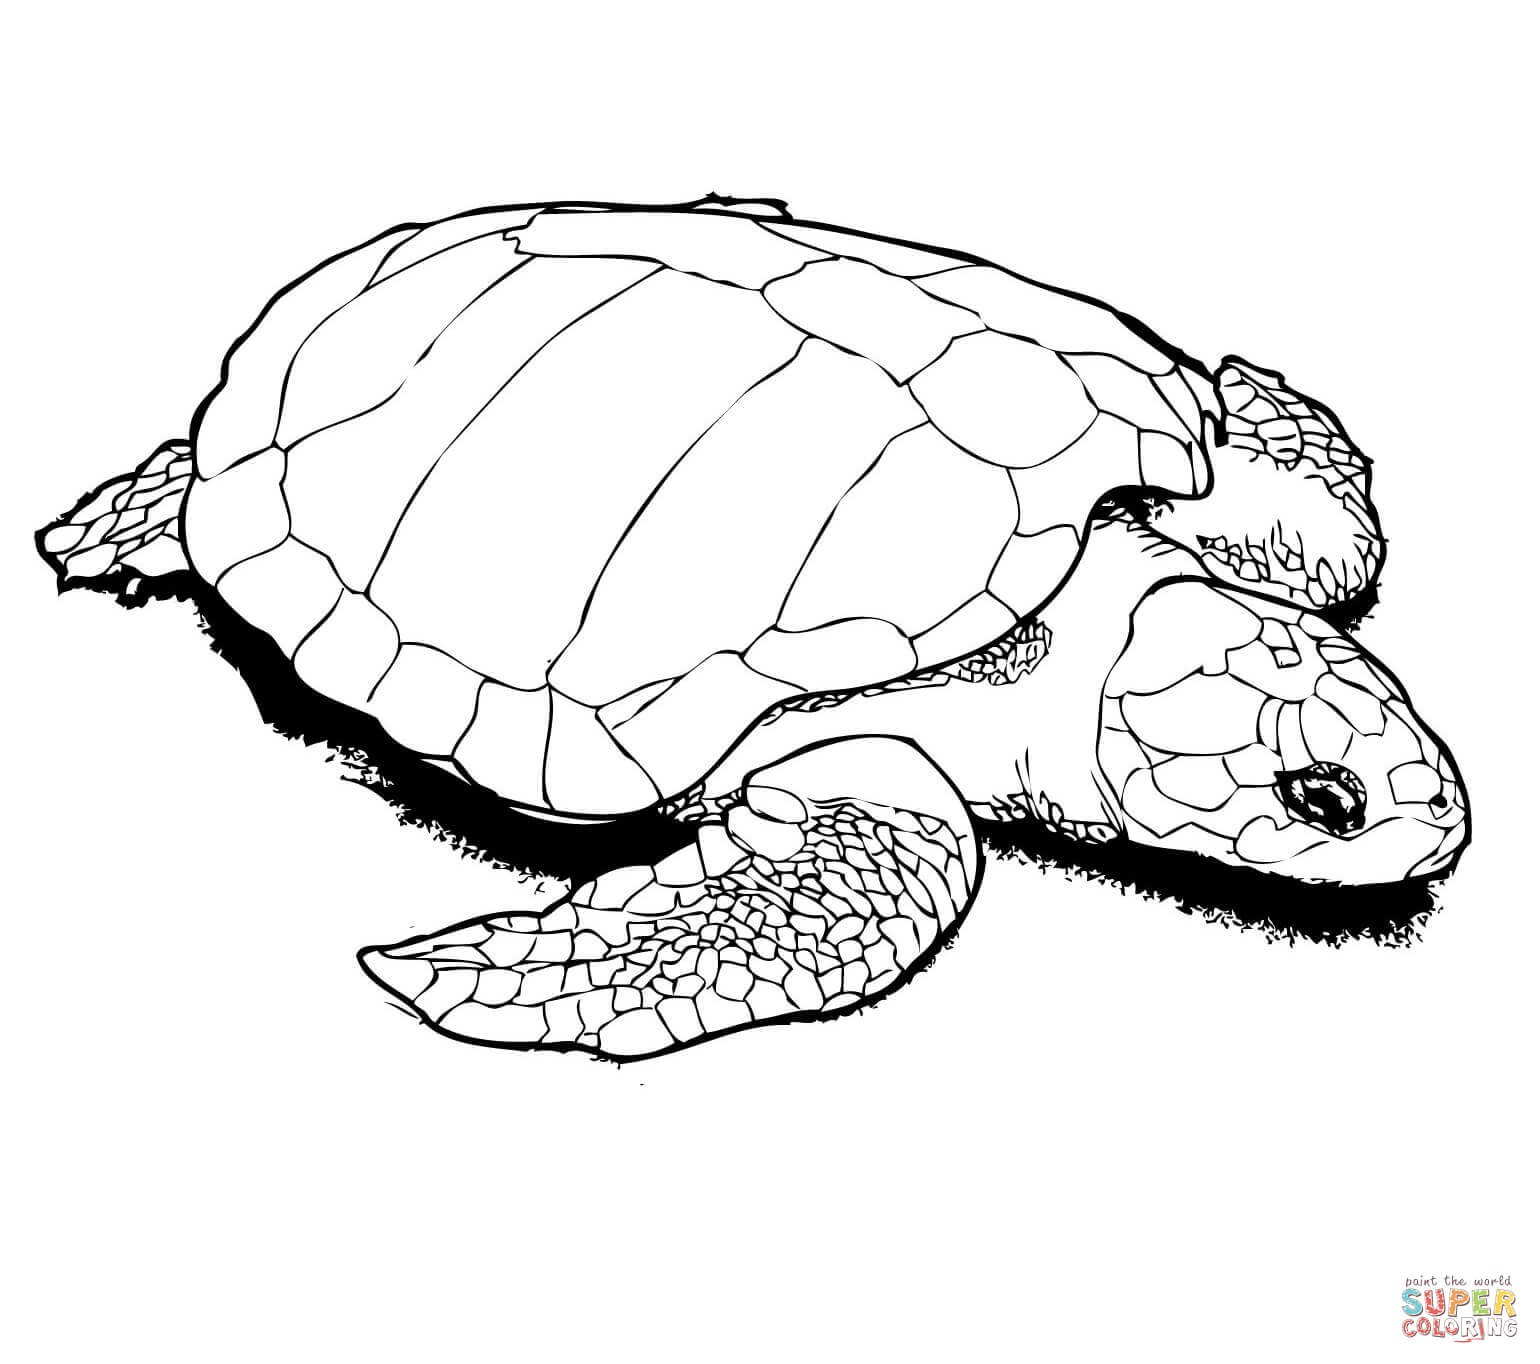 hawaiian turtle coloring pages loggerhead sea turtle drawing free download on clipartmag hawaiian turtle pages coloring